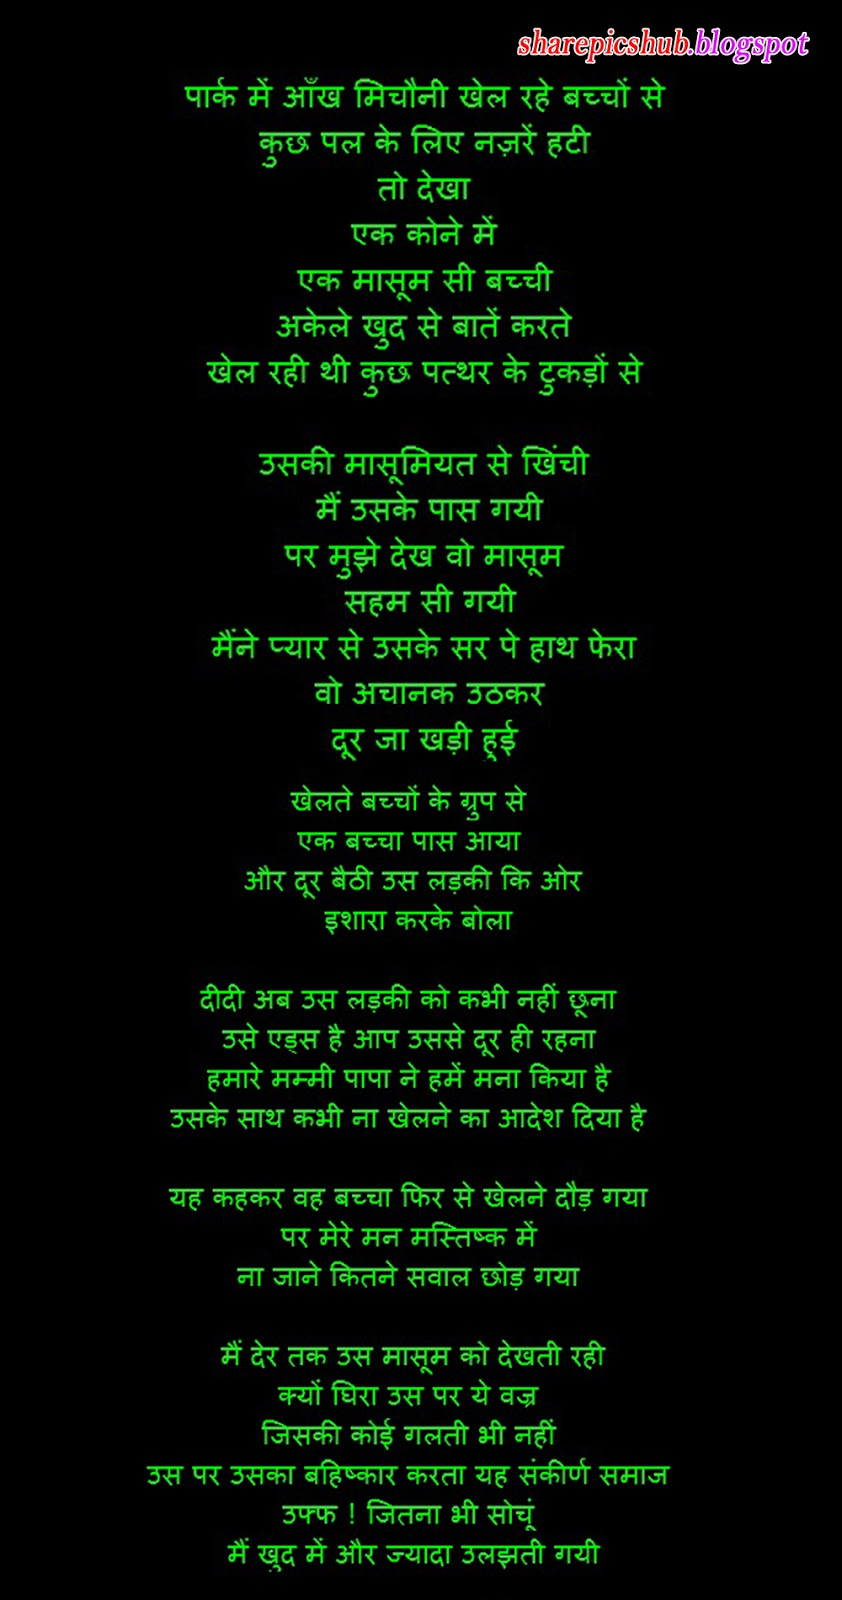 Funny Quote Wallpaper In Hindi Hindi Poem On Aids Awareness Hindi Poems For School